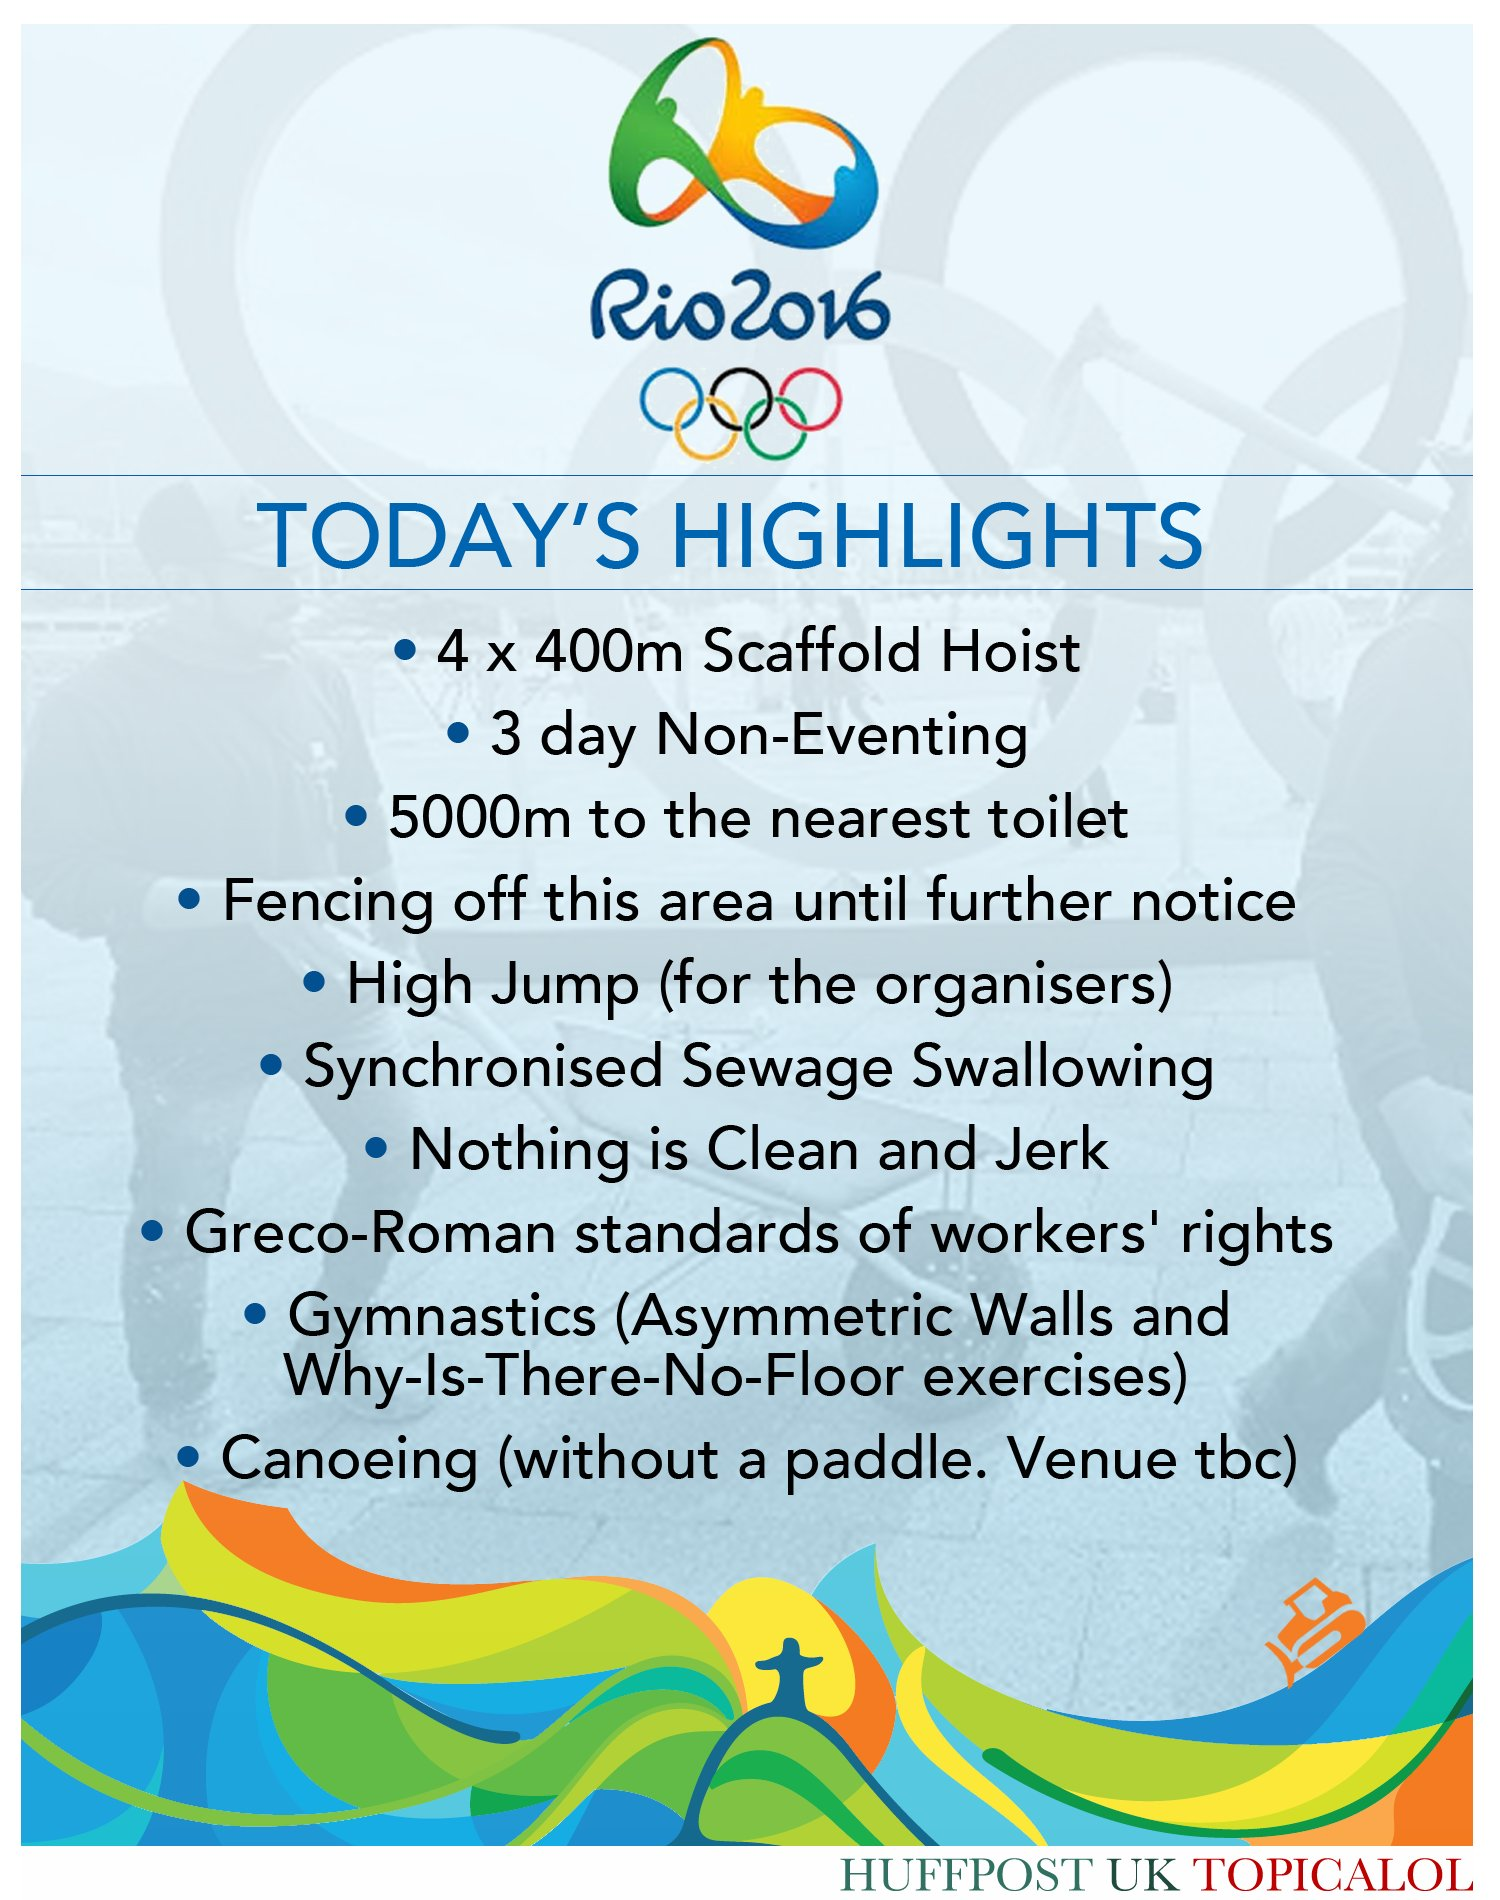 Can't wait for the first day of events at #Rio2016. (done for @huffpostukcom) https://t.co/w5FgAGPFKa